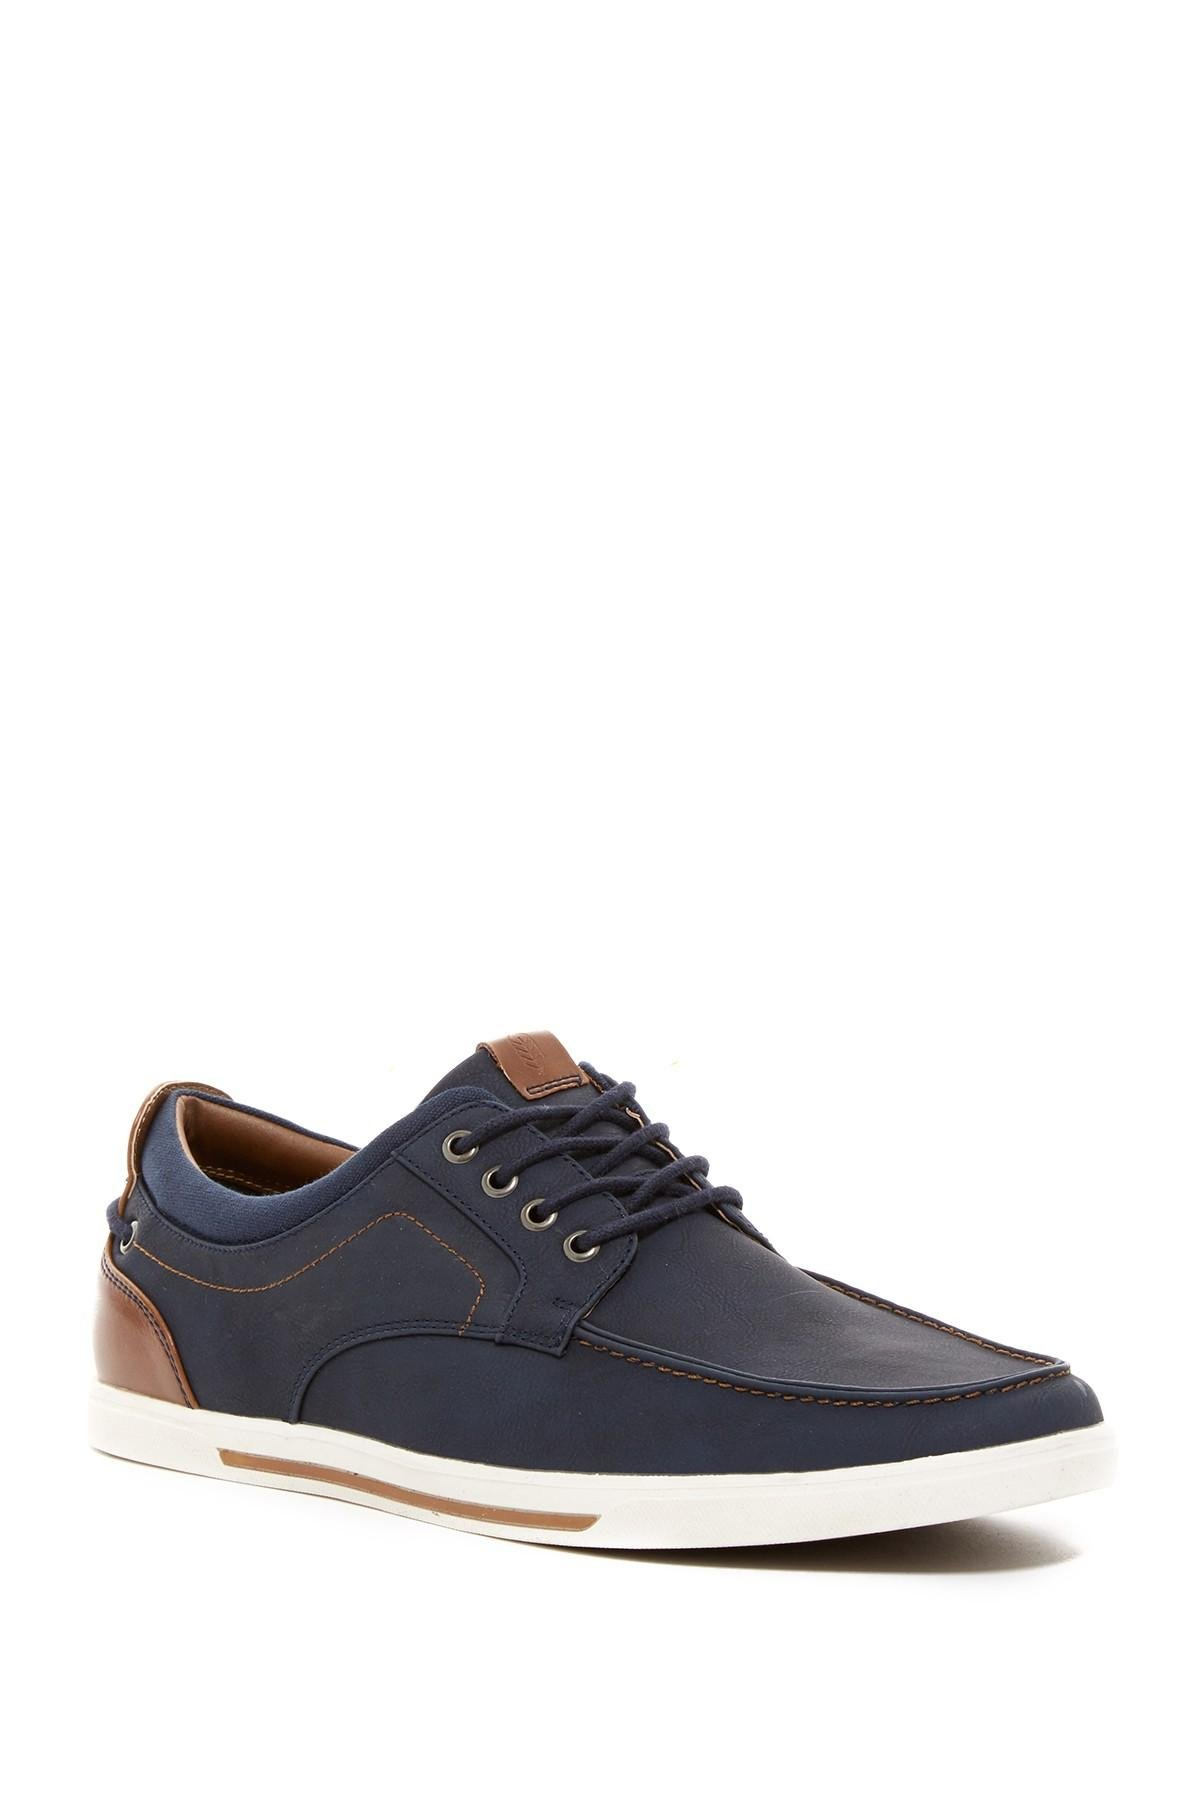 Call It Spring Fabiano Boat Shoe In Blue For Men Lyst